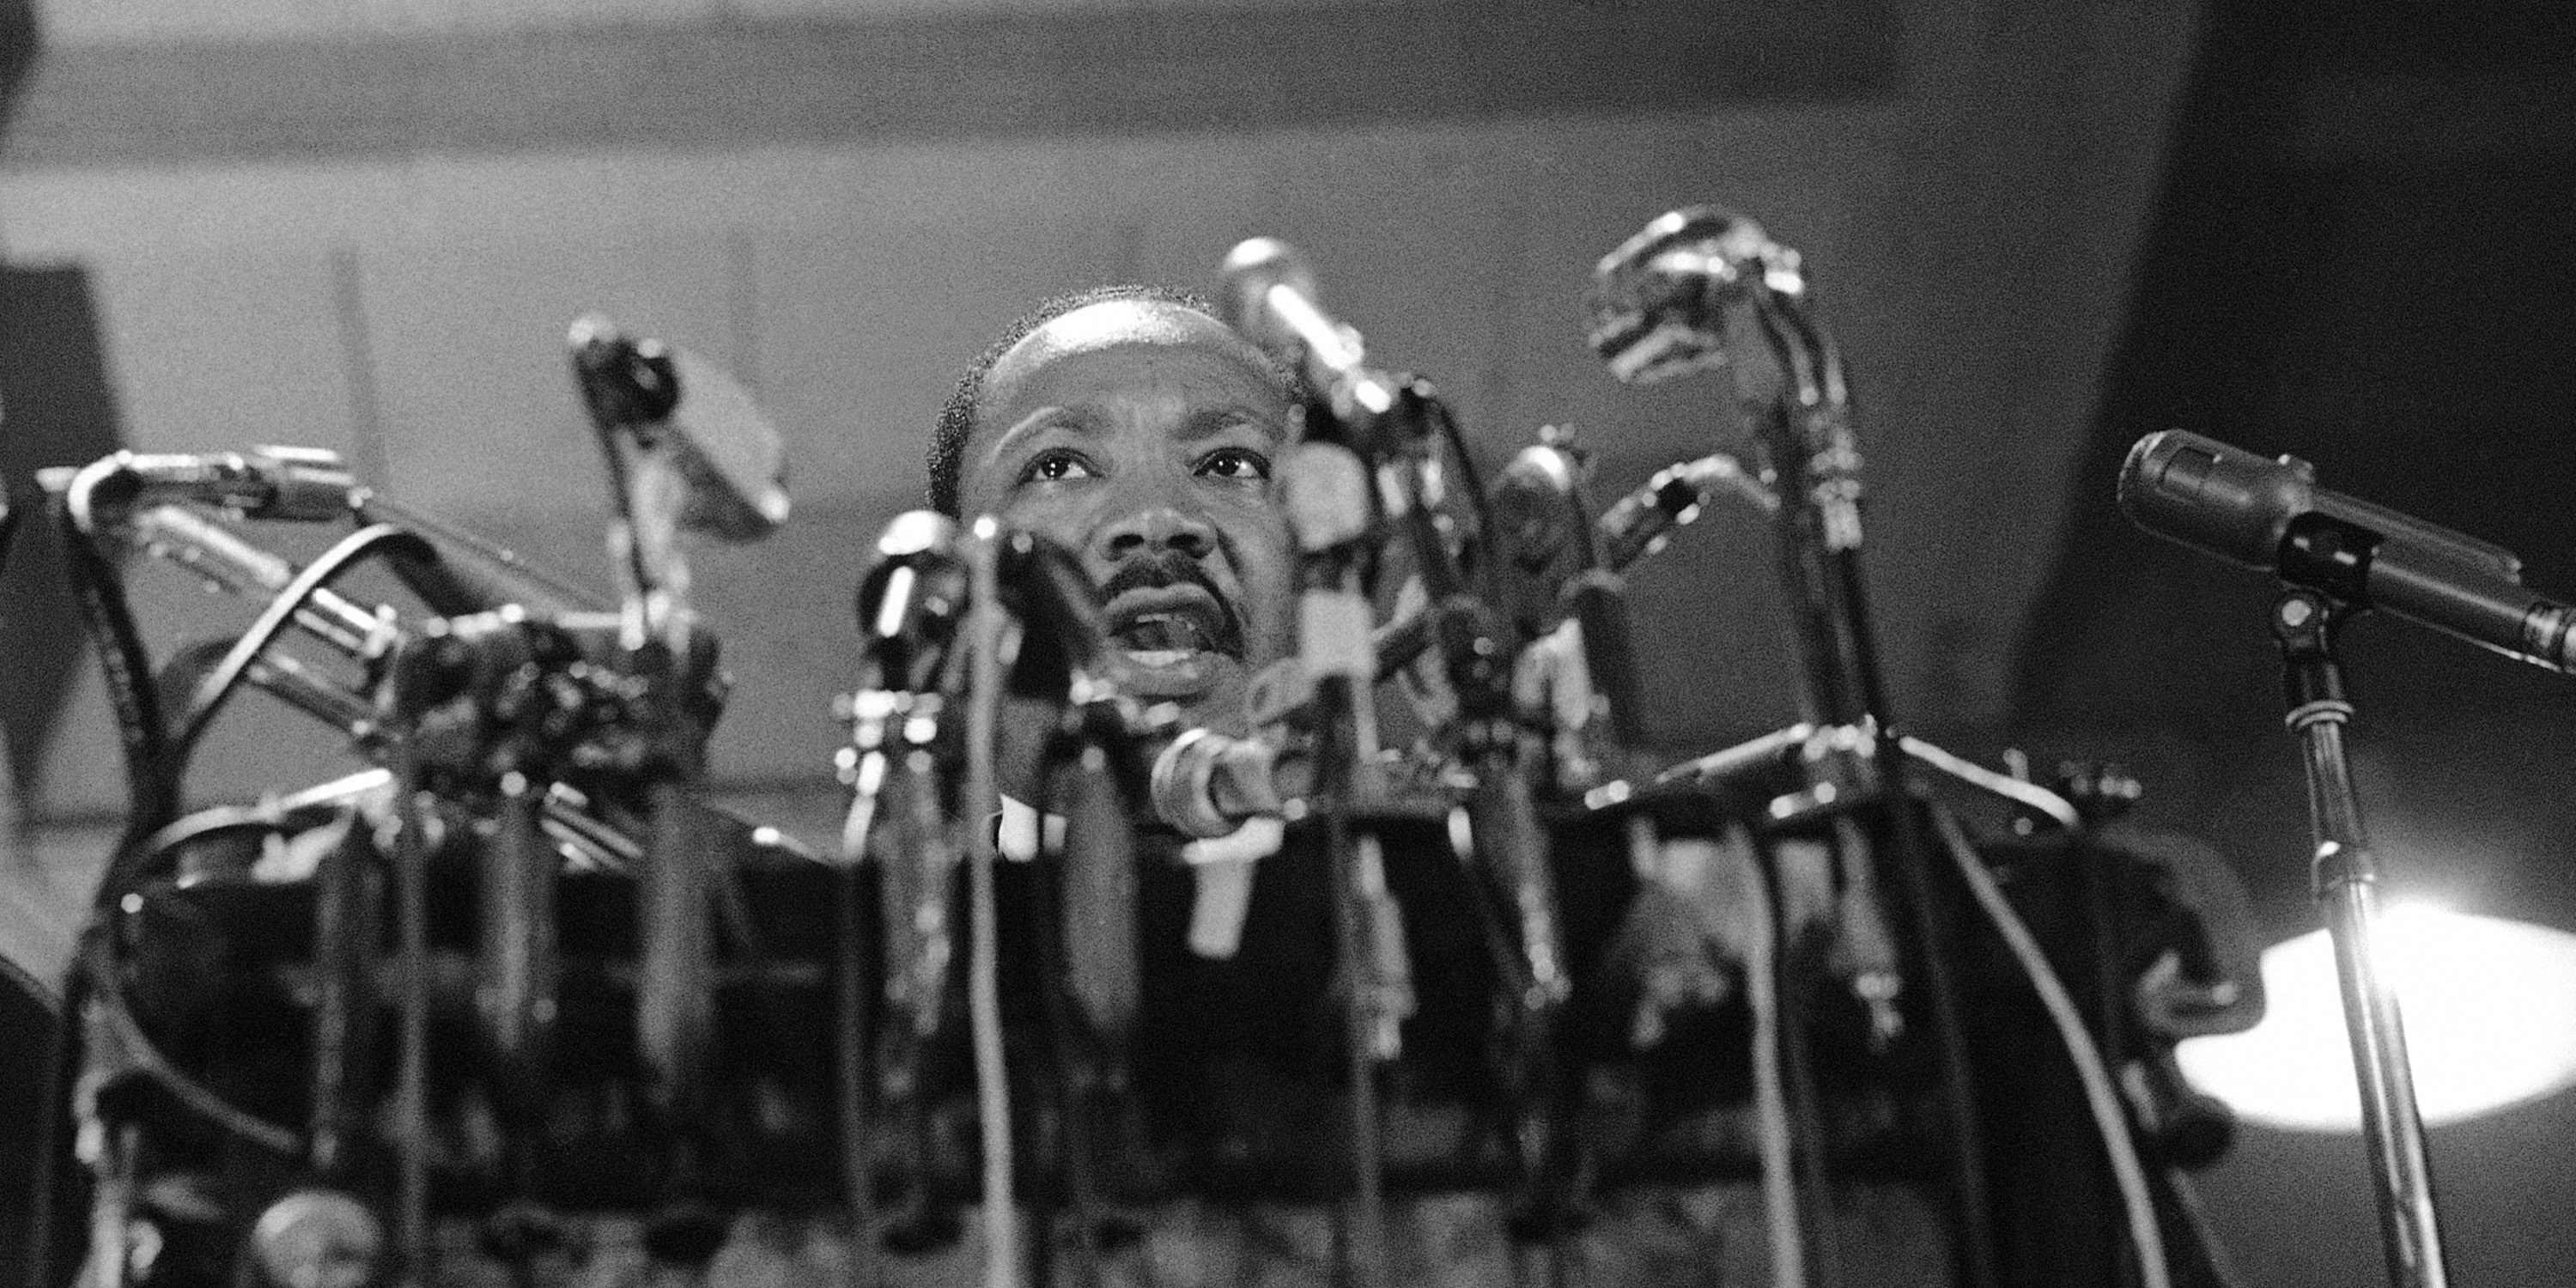 Martin Luther King Jr. spent the last year of his life detested by the liberal establishment | The Transnational